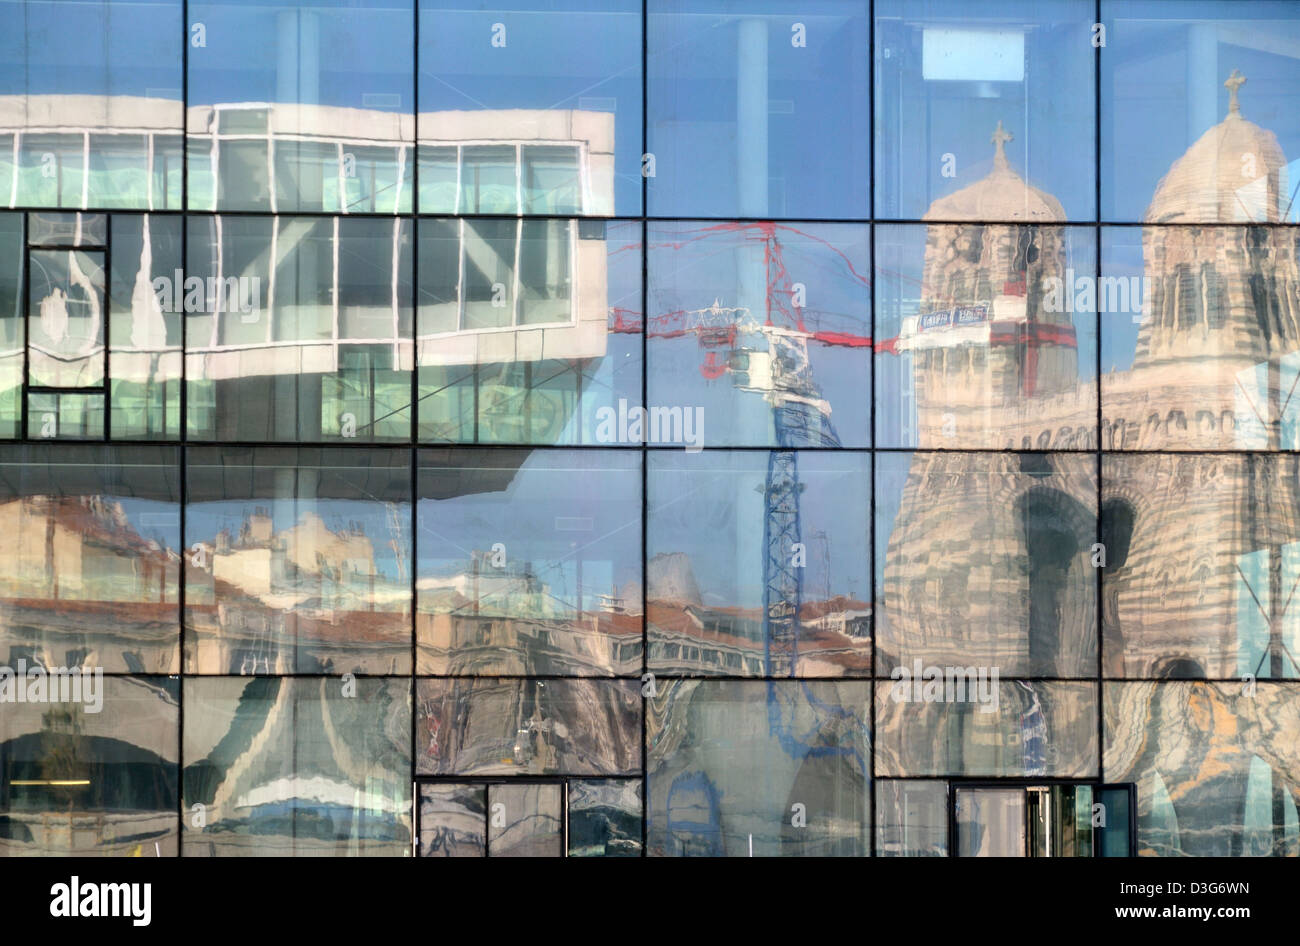 City Reflections of the Villa Mediterranée & Marseille Cathedral in the Mirror Glass of the MUCEM Museum - Stock Image